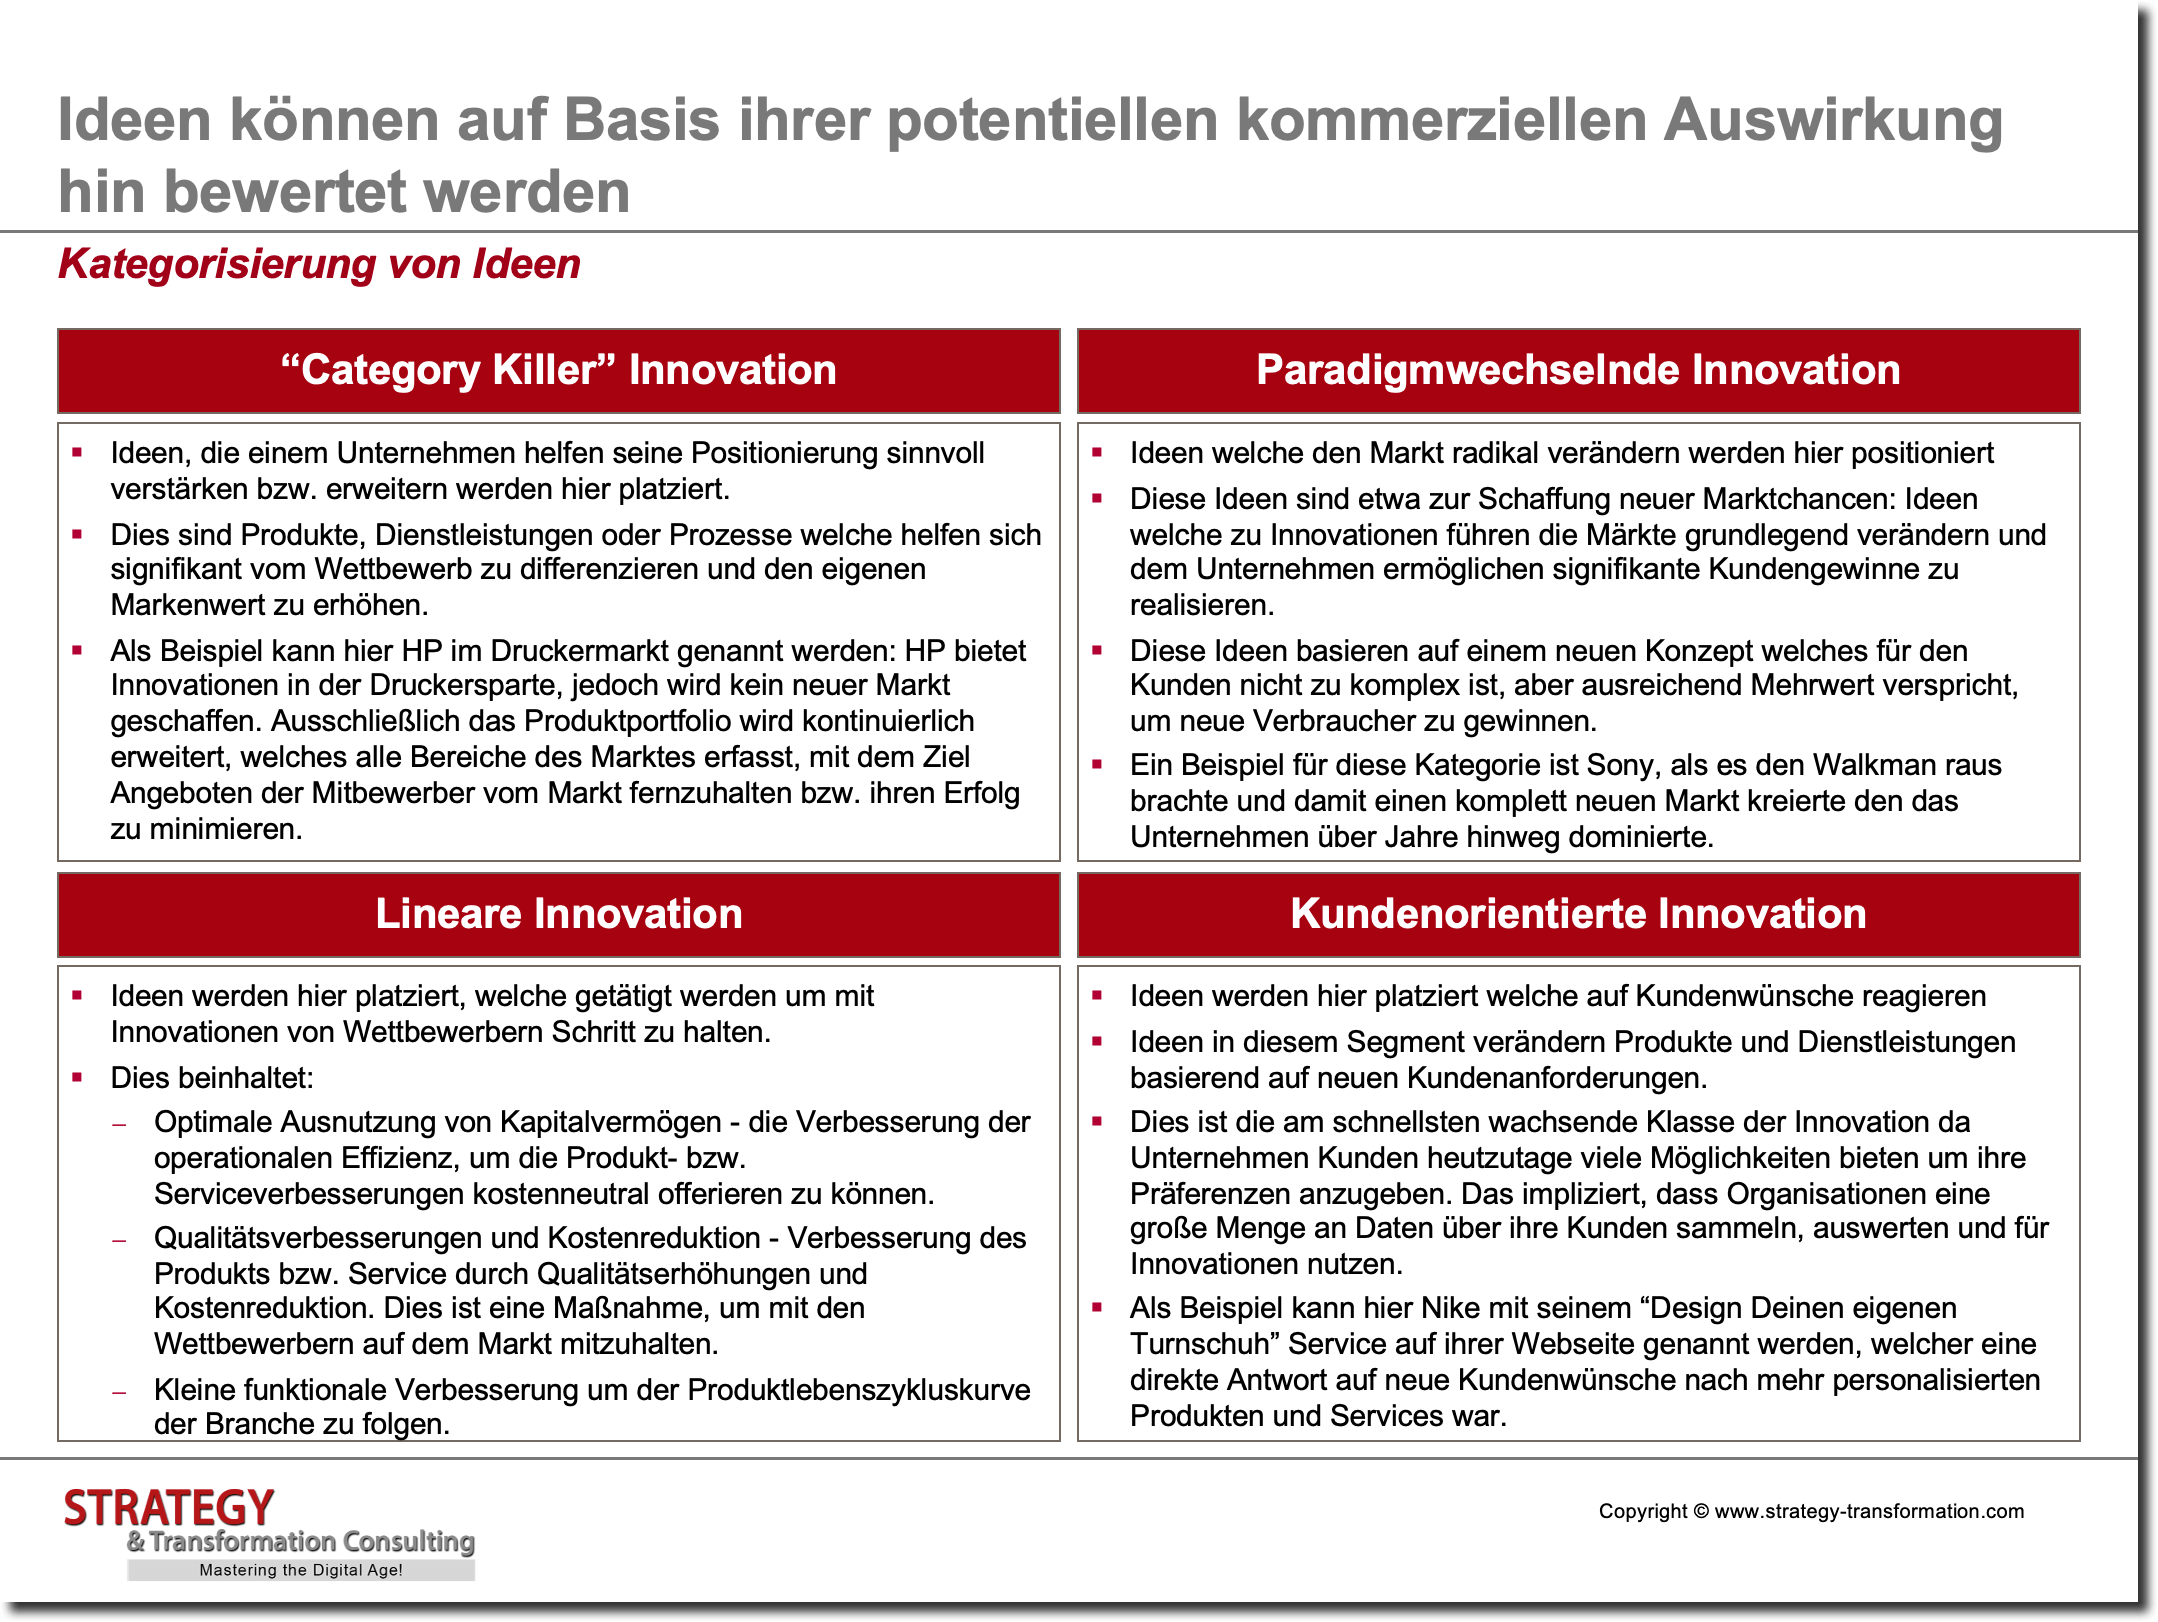 Innovationsmanagement_Kategorisierung von Ideen